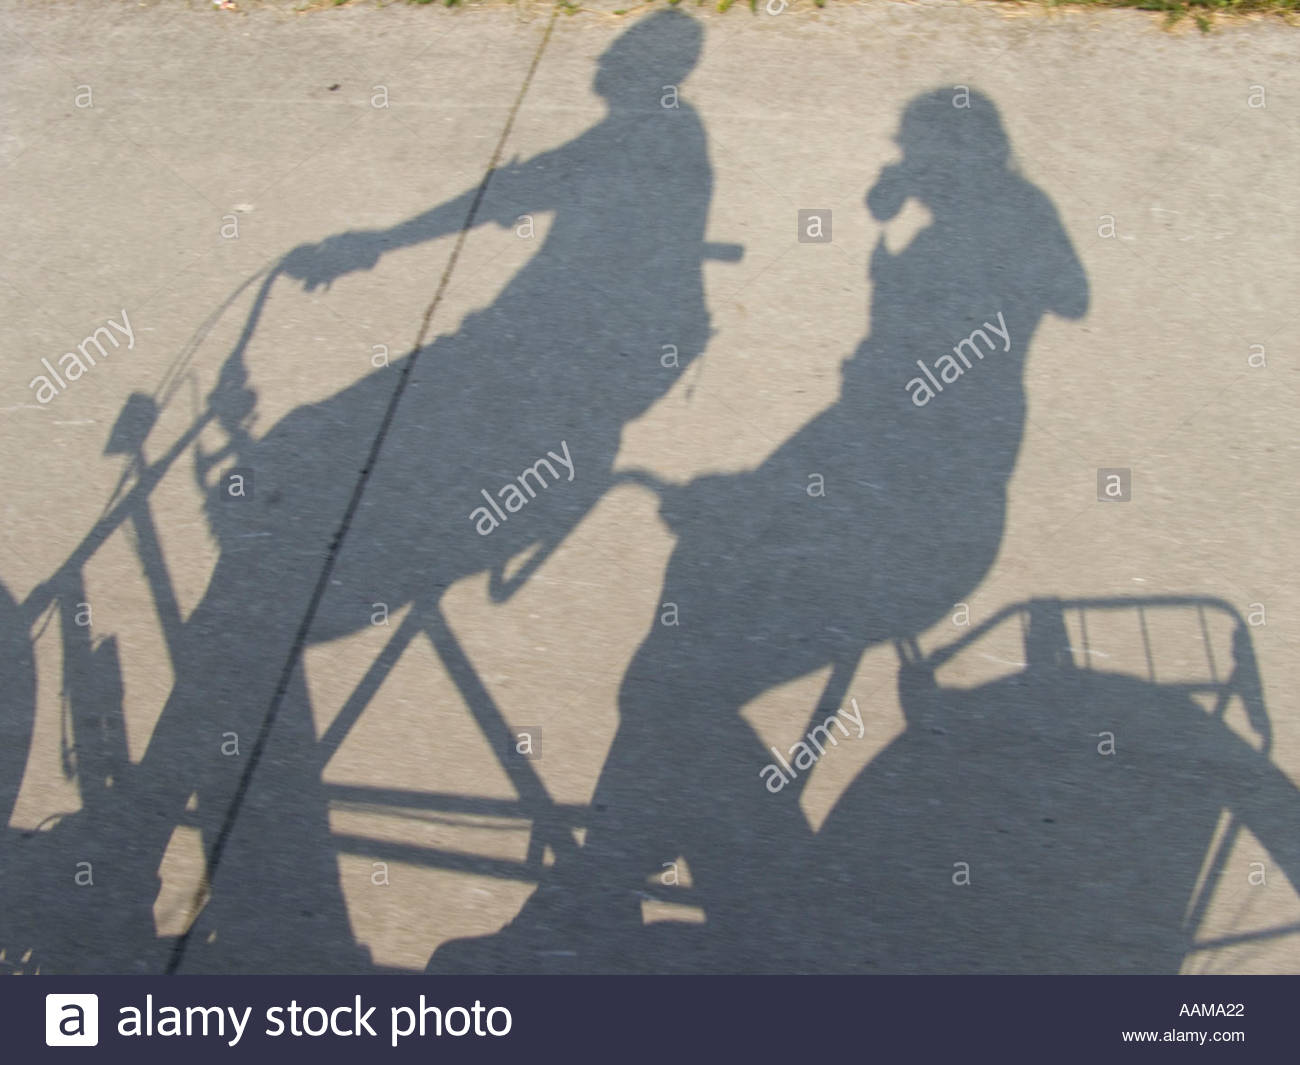 shadow of tandem bicycle with two people on it - Stock Image